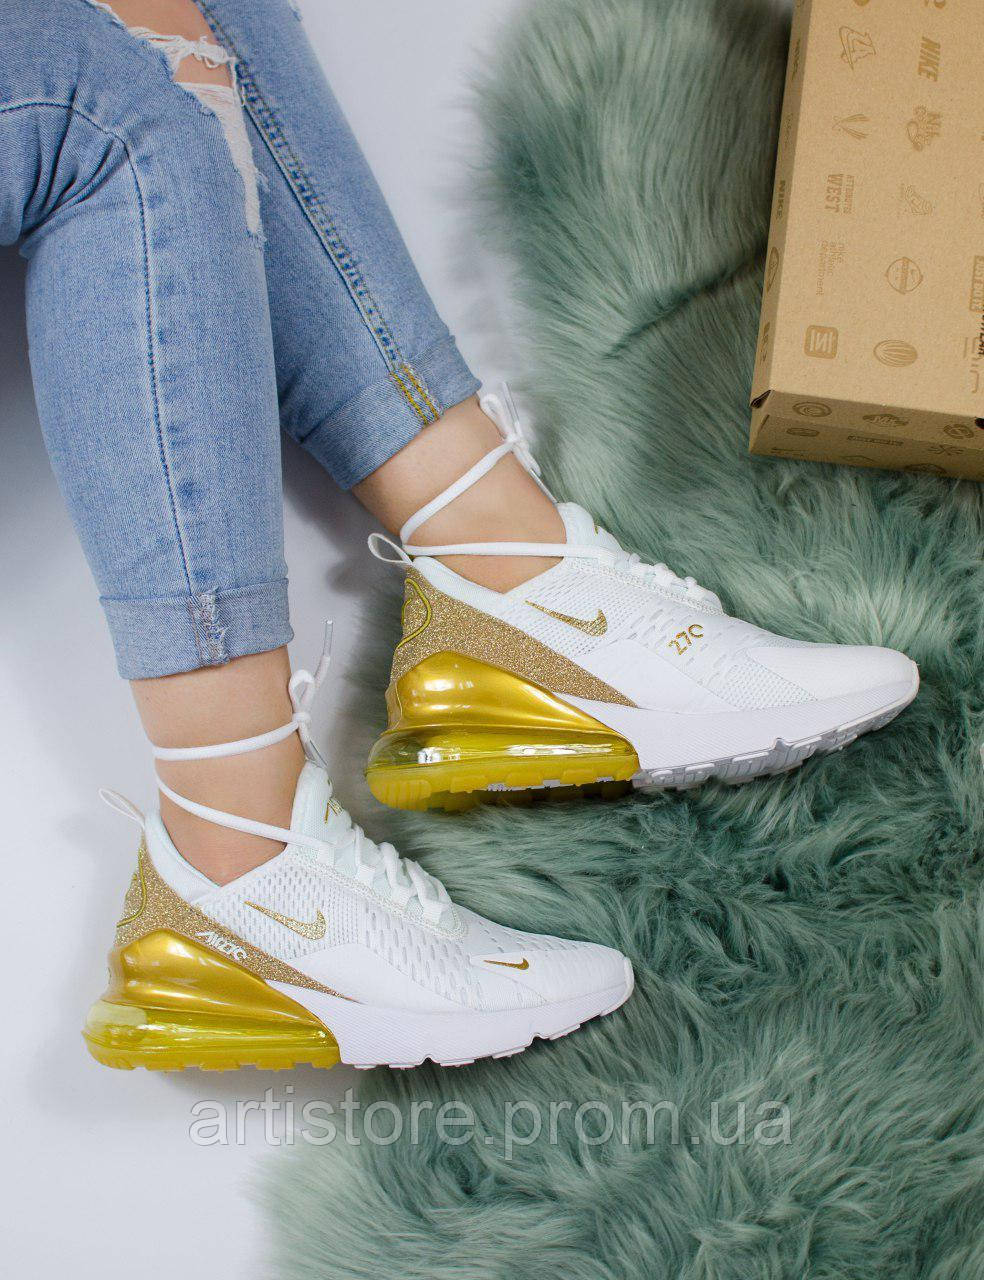 Кроссовки Nike Air Max 270 White with gold